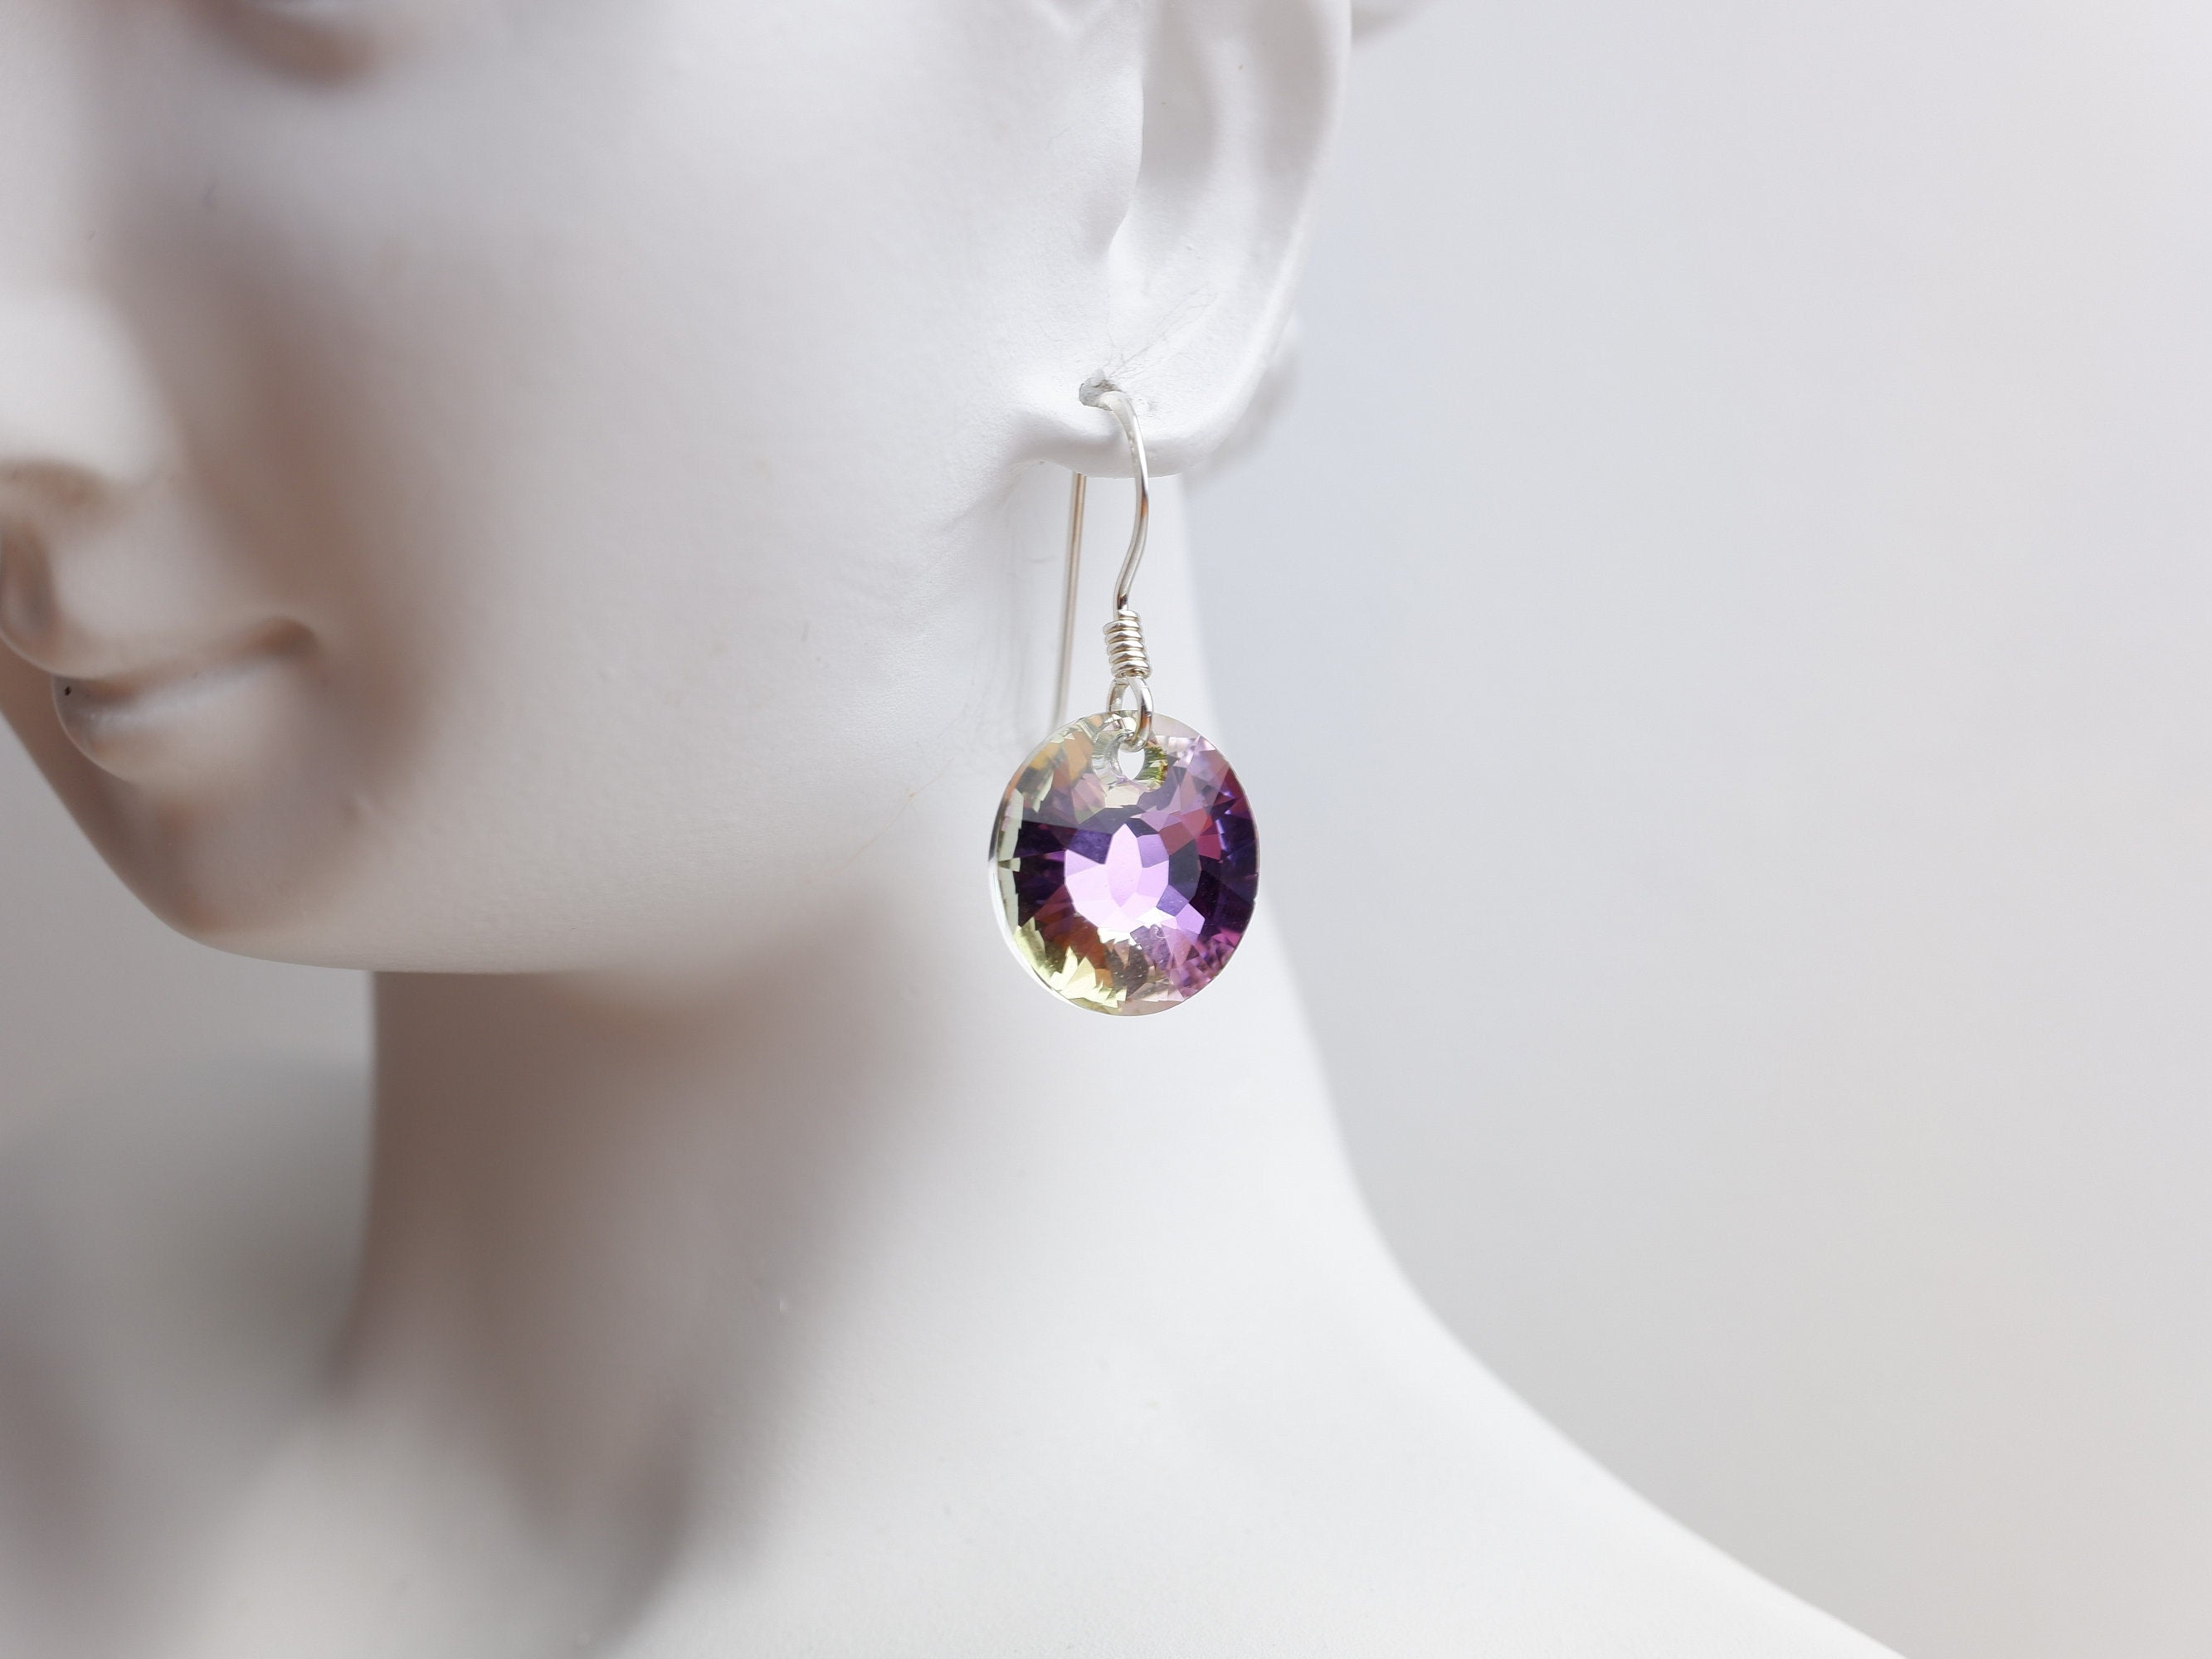 Swarovski Crystal Round Drop Earrings - Vitrail Light - Sterling Silver - Wedding Jewellery